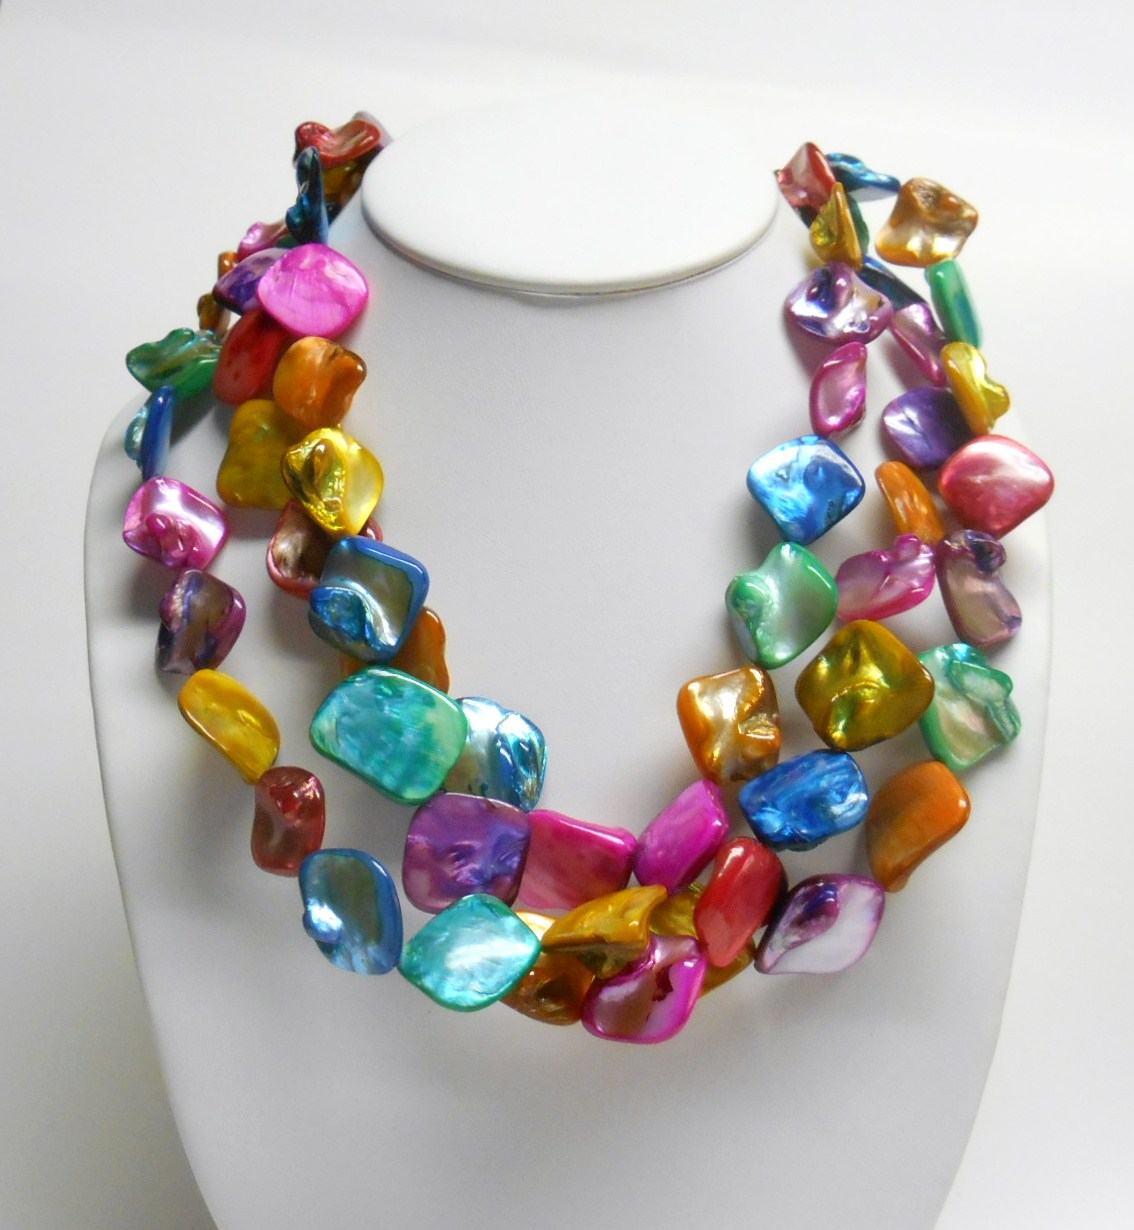 Three strands of vibrant rainbow multi color shells make up this unique necklace. The matching hook dangle earrings are made of the same pink and blue shells.